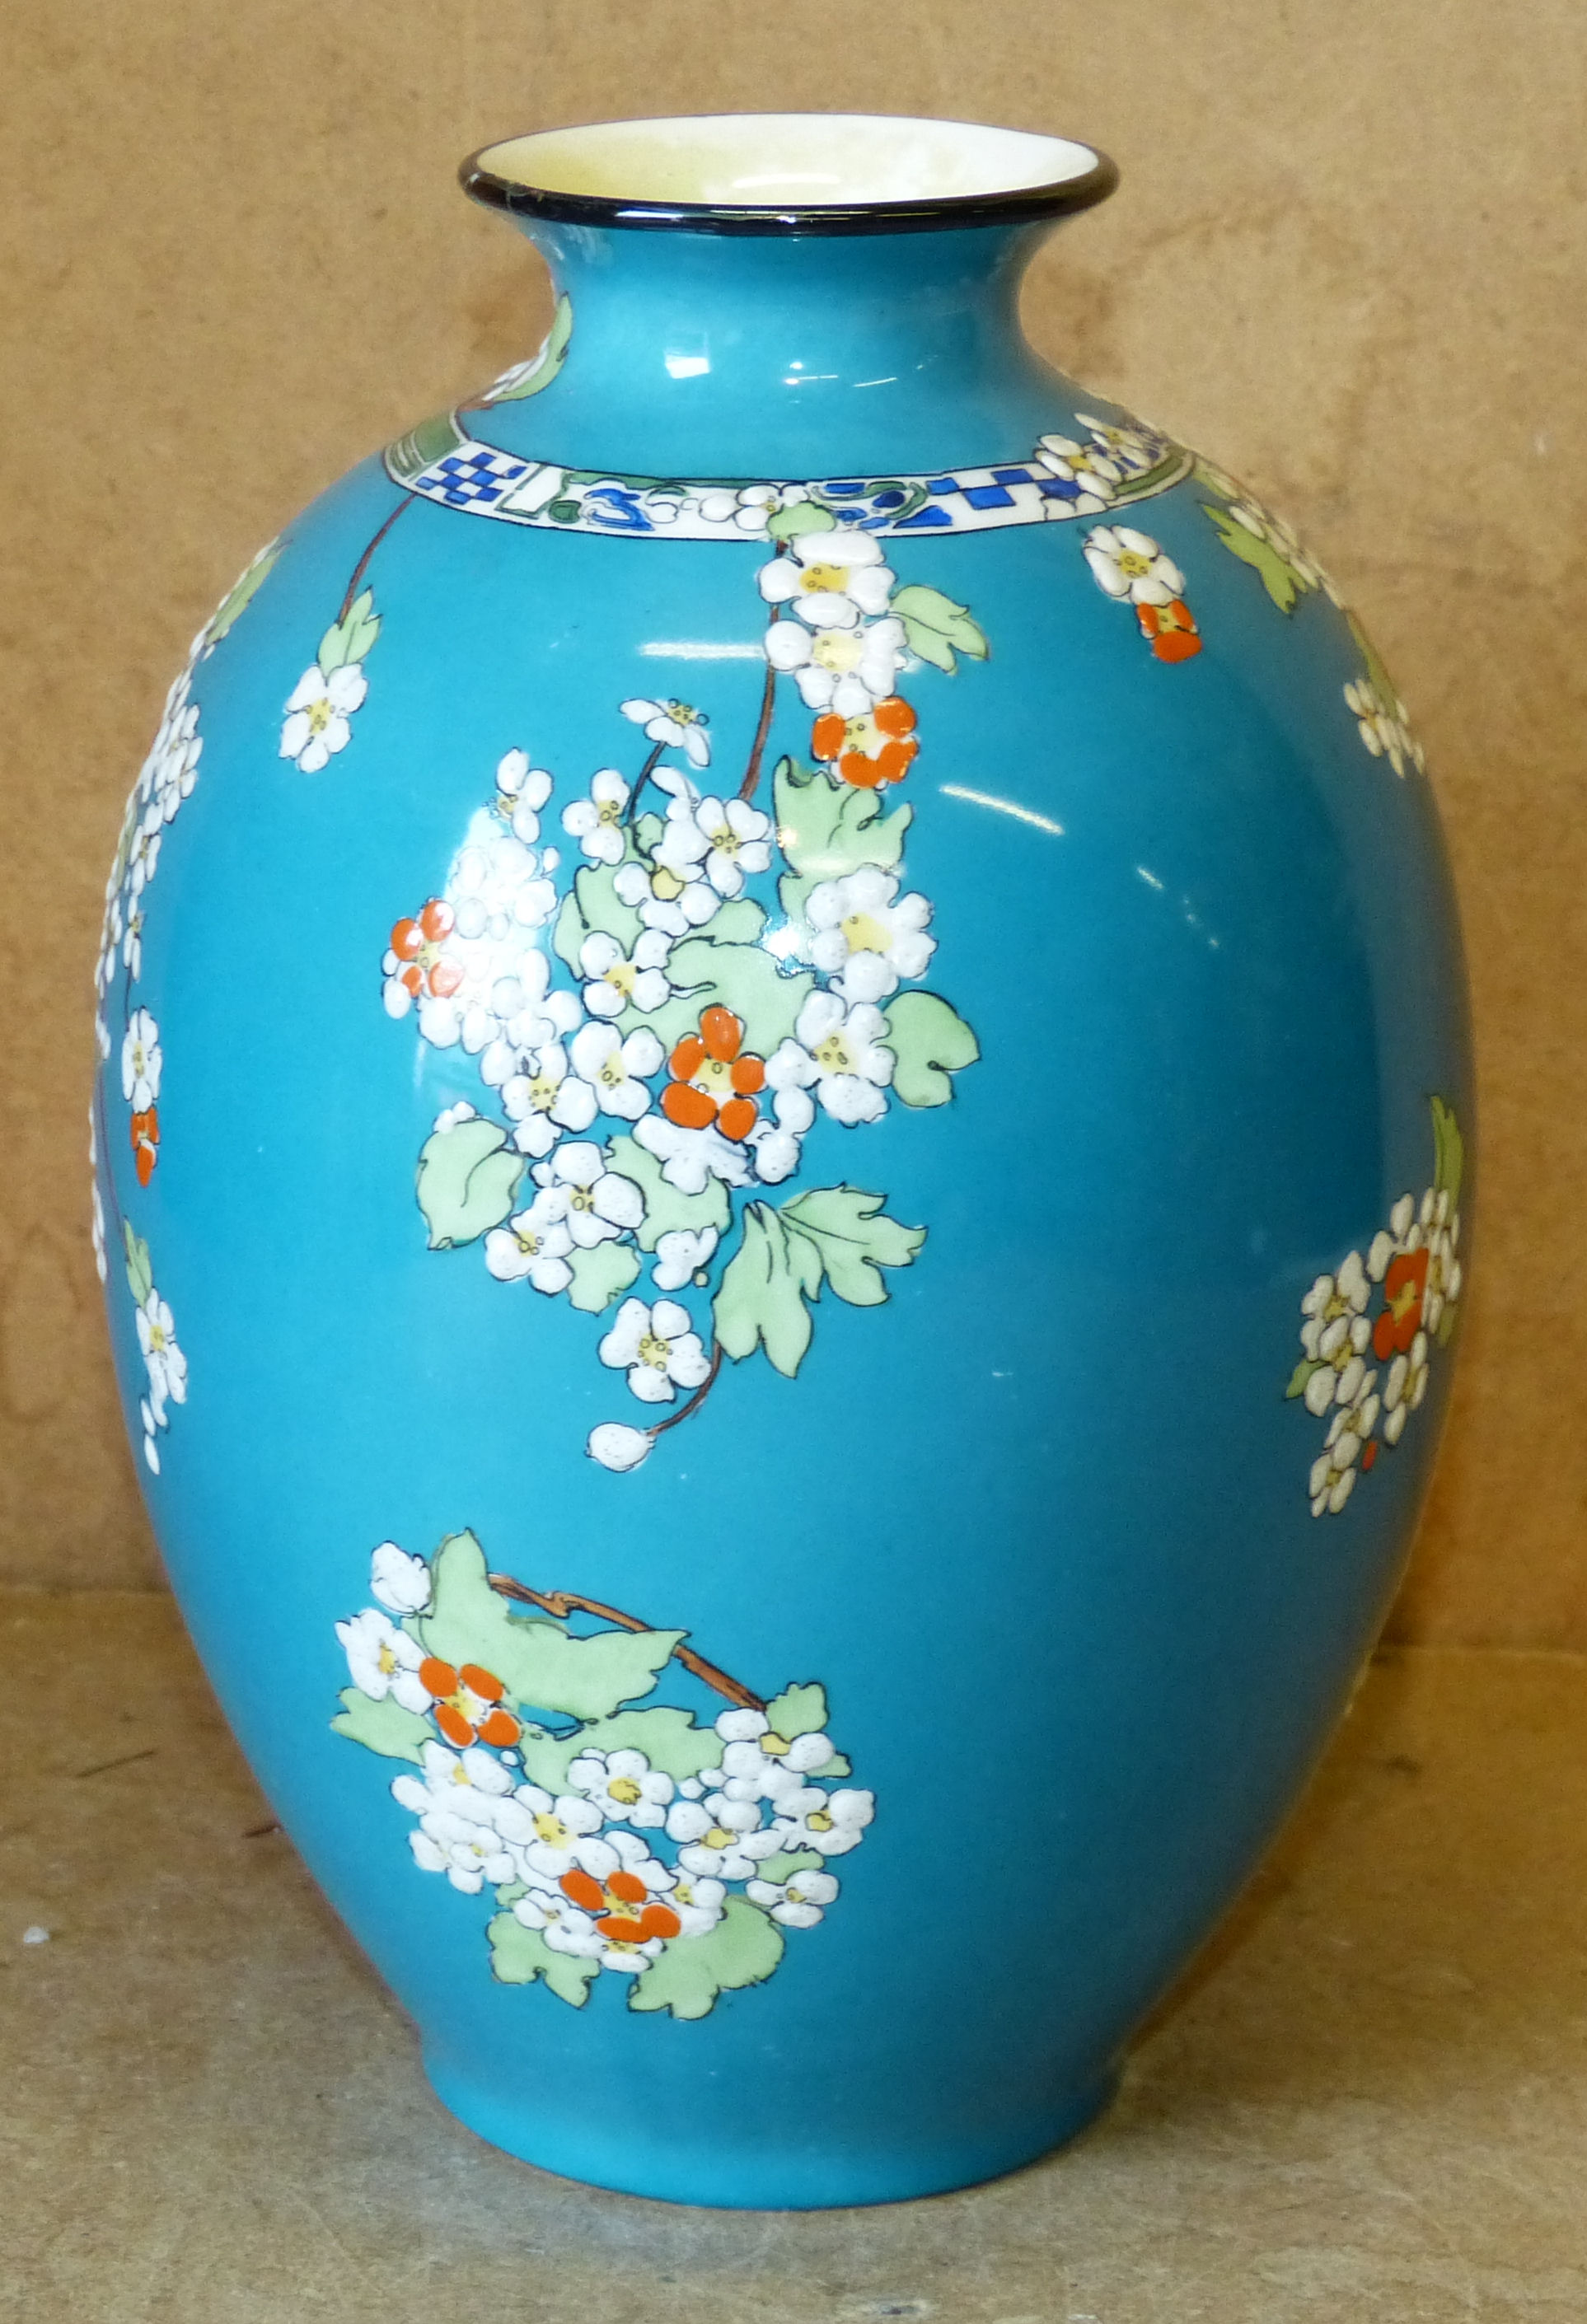 A Royal Doulton Bulbous Thin Necked Trumpet Shaped Vase on turquoise ground having raised multicoloured floral